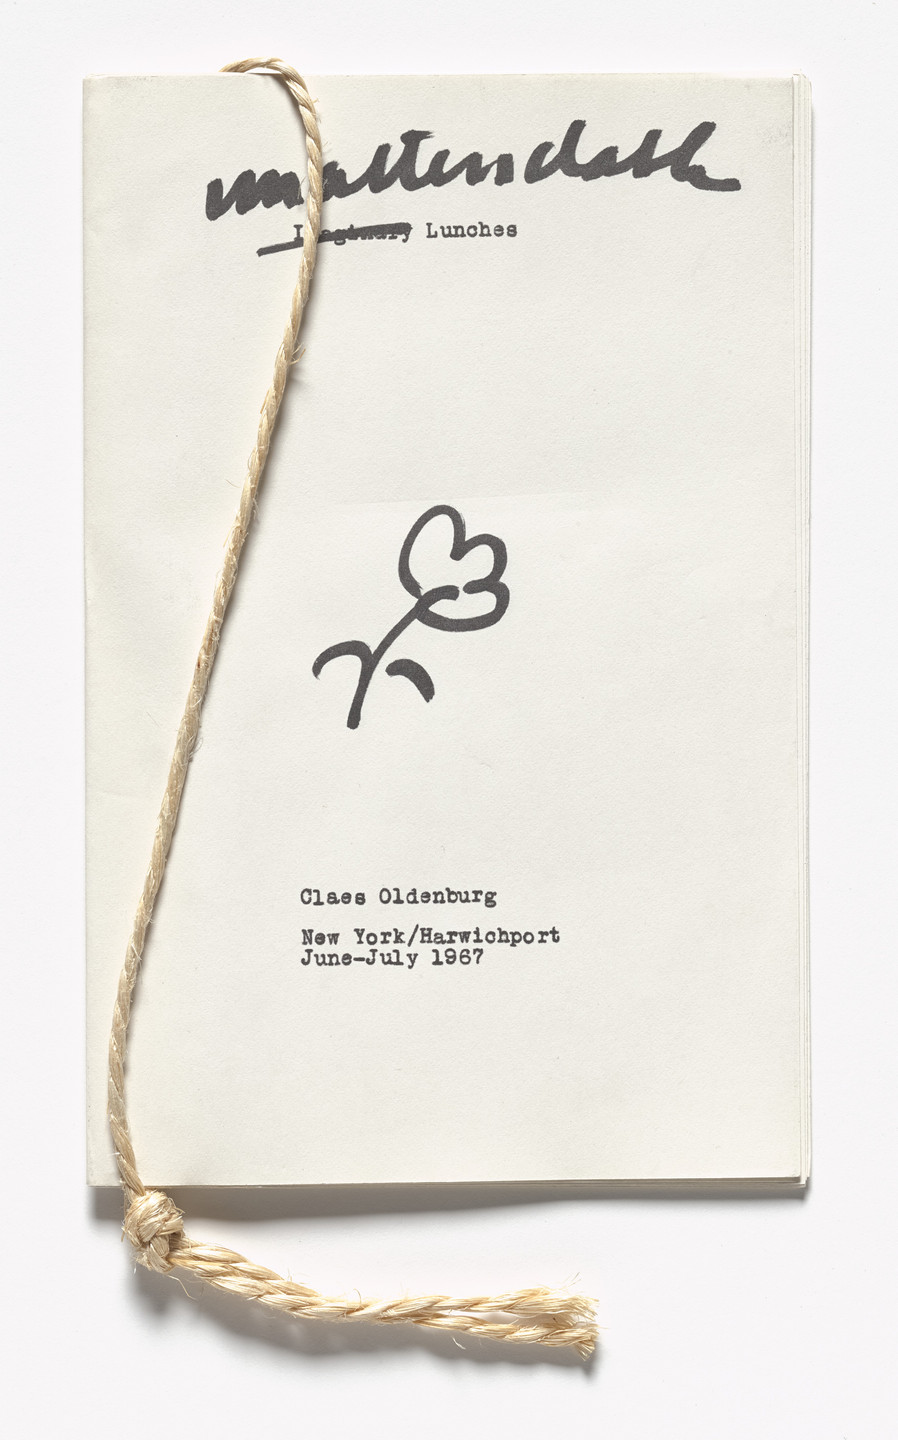 Claes Oldenburg. Unattendable Lunches from S.M.S. No. 6. 1968